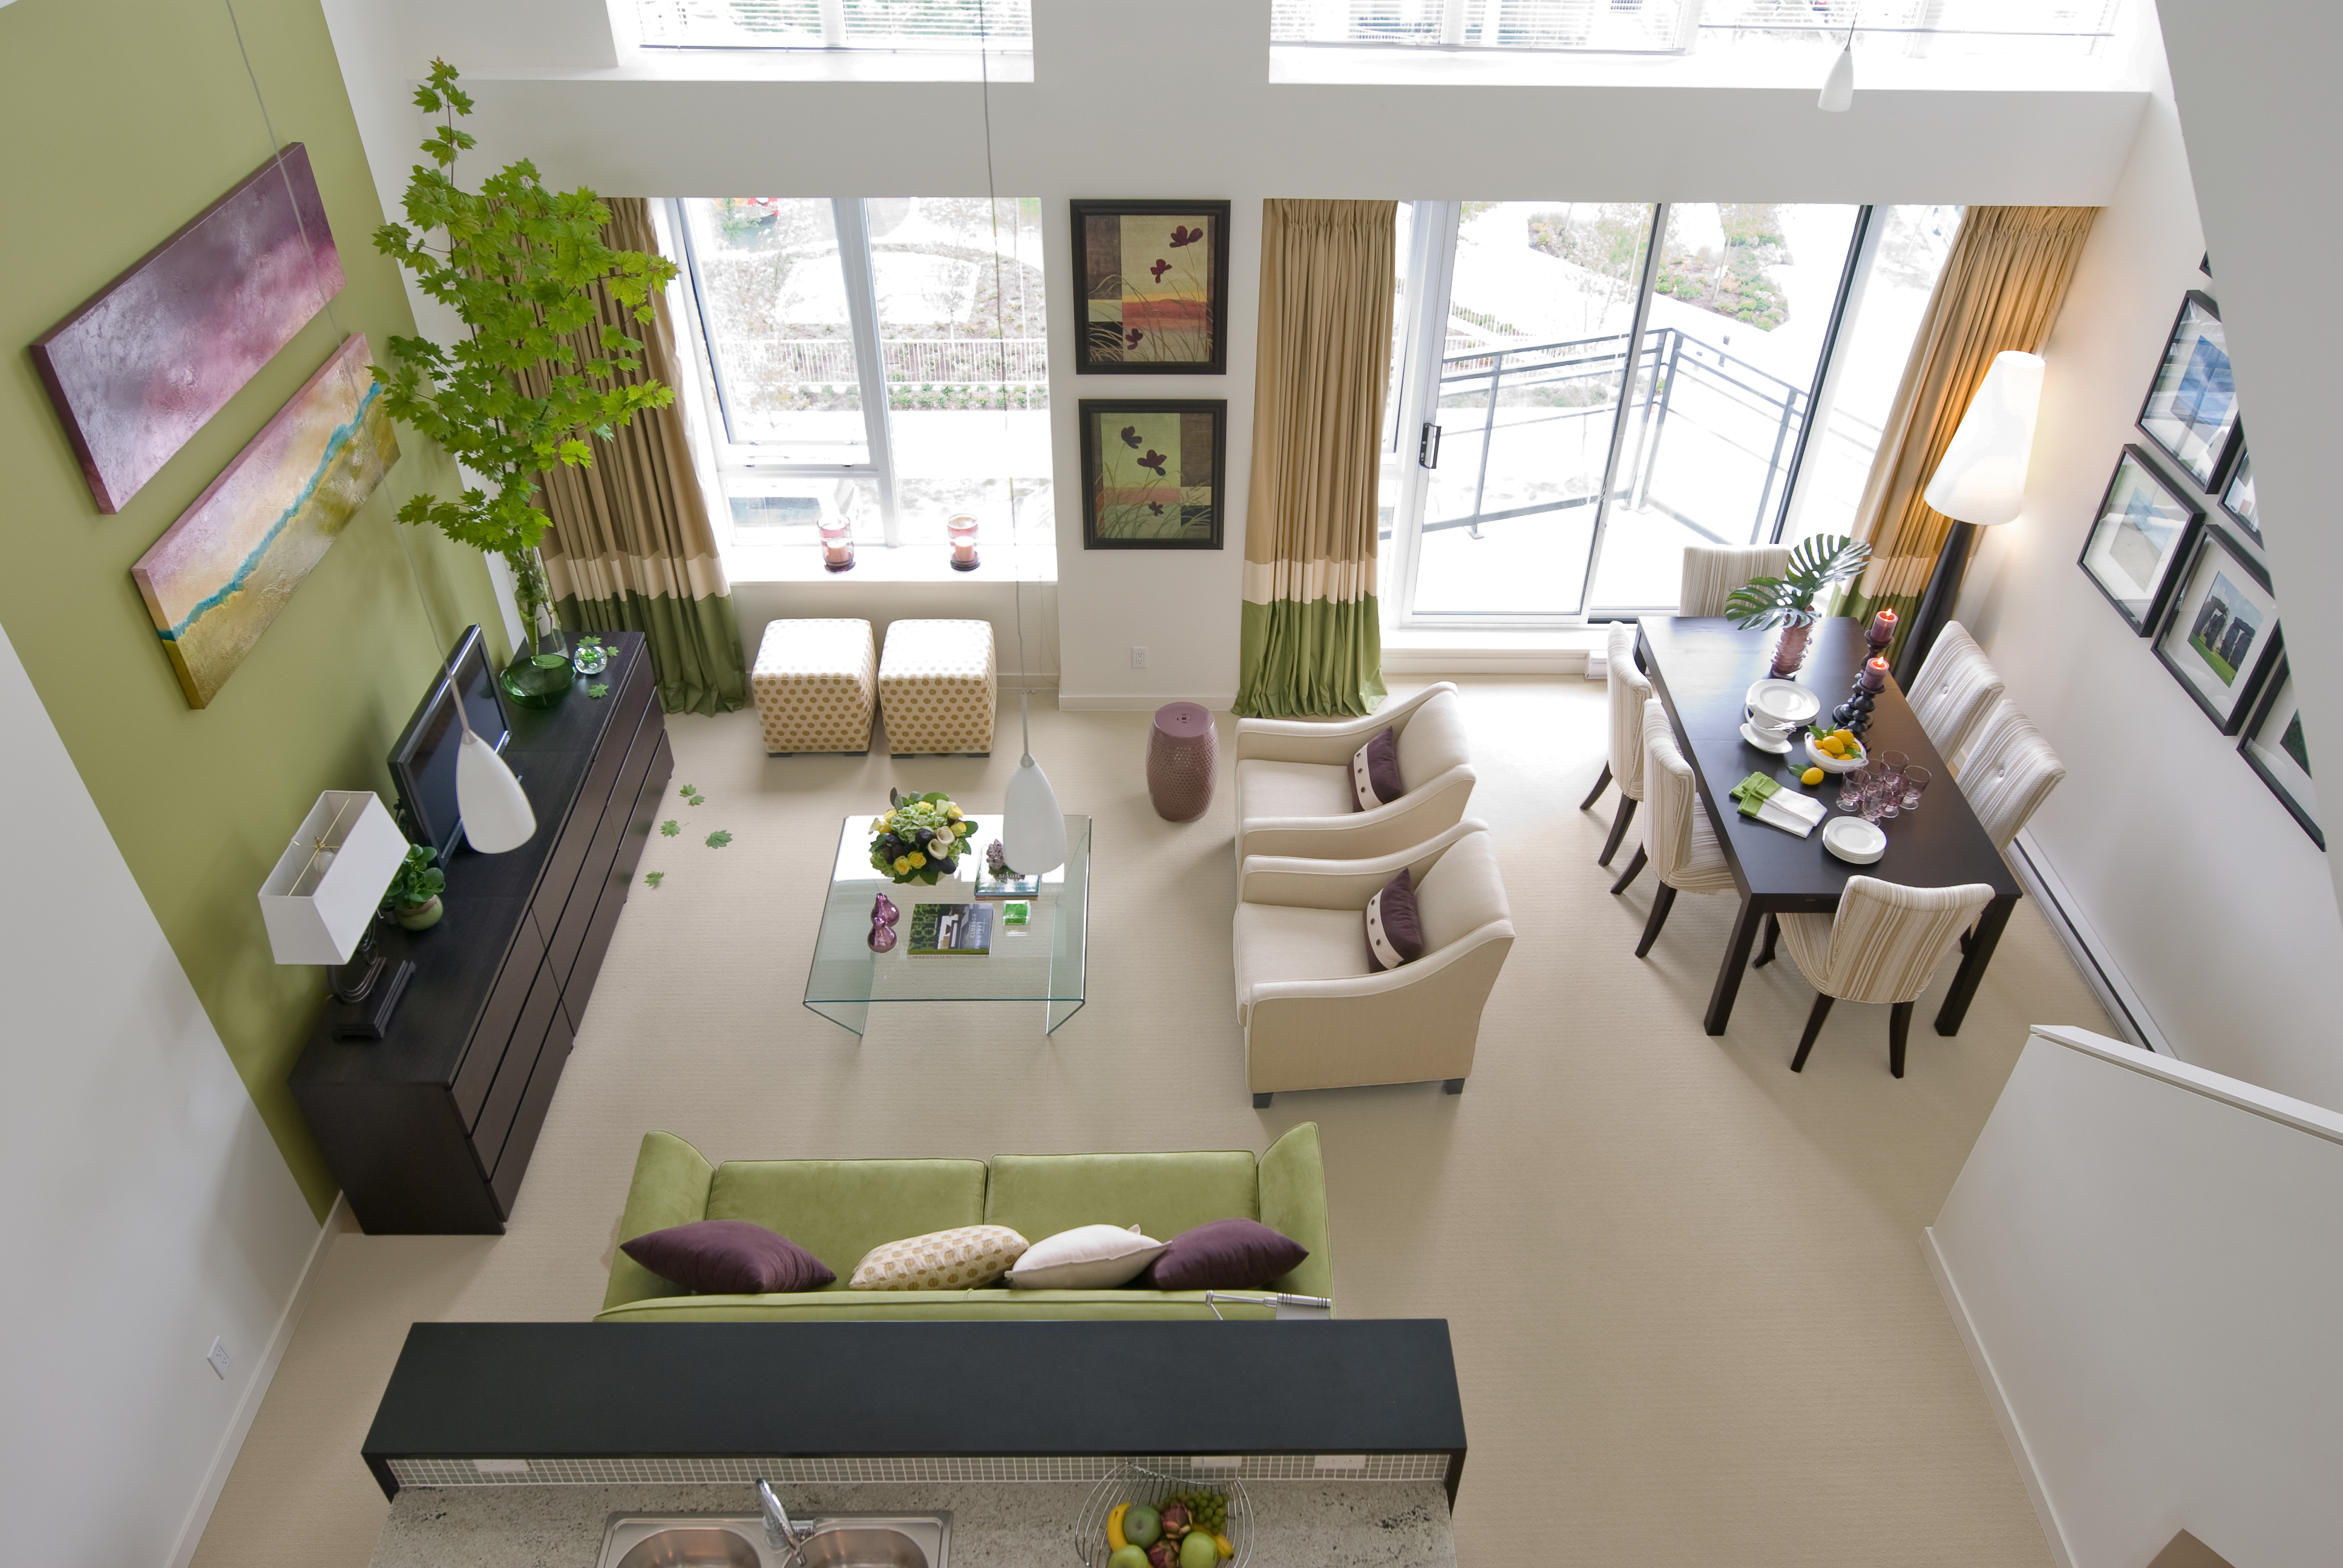 Living room with large windows and one wall painted green